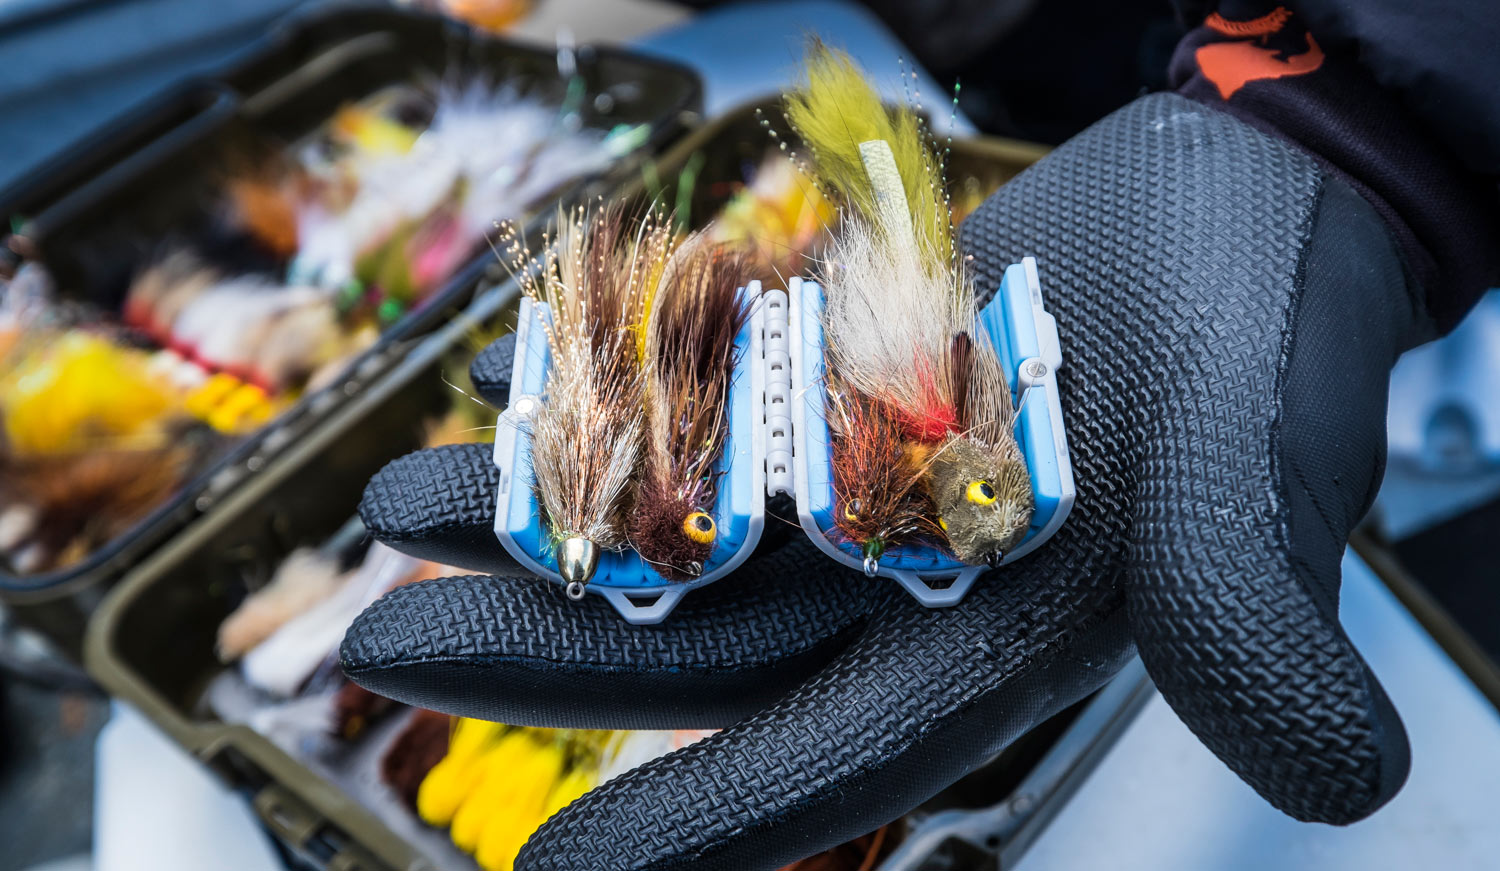 Streamer box fly fishing gink and gasoline how to for The fishing fly box